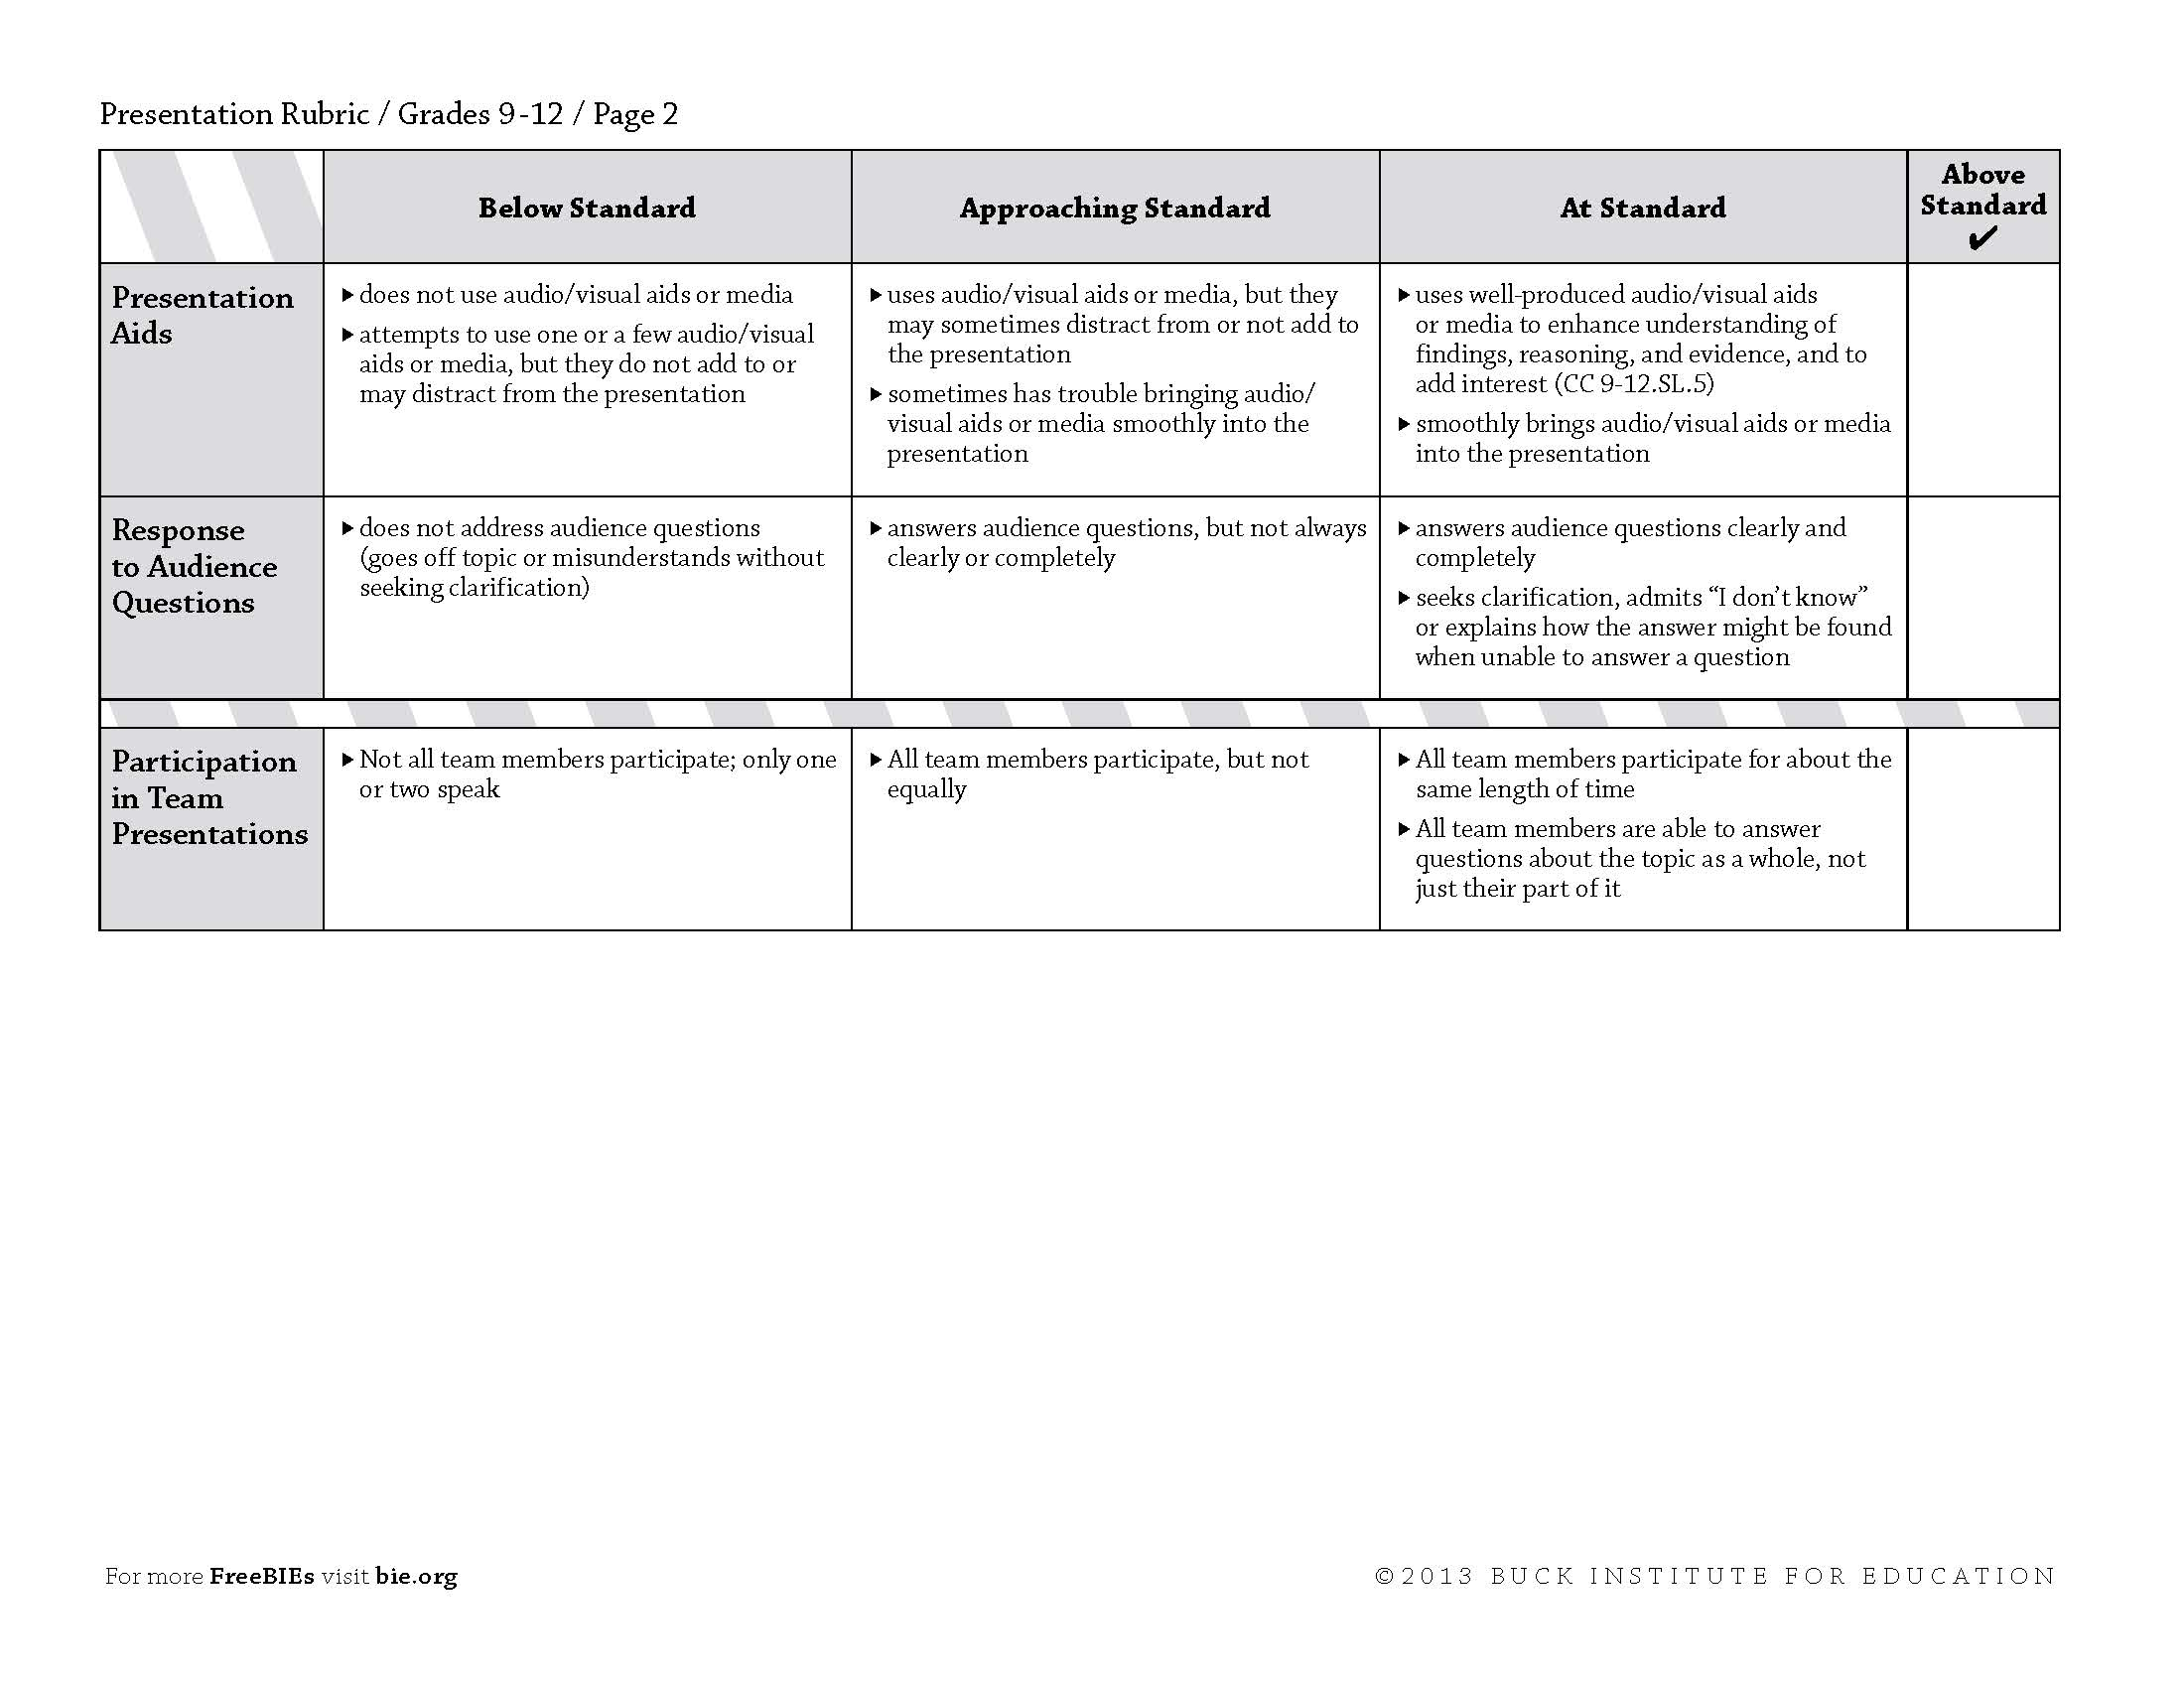 picture regarding Interest Inventory for Middle School Students Printable identify Evaluation and Rubrics - Kathy Schrocks Consultant towards Anything